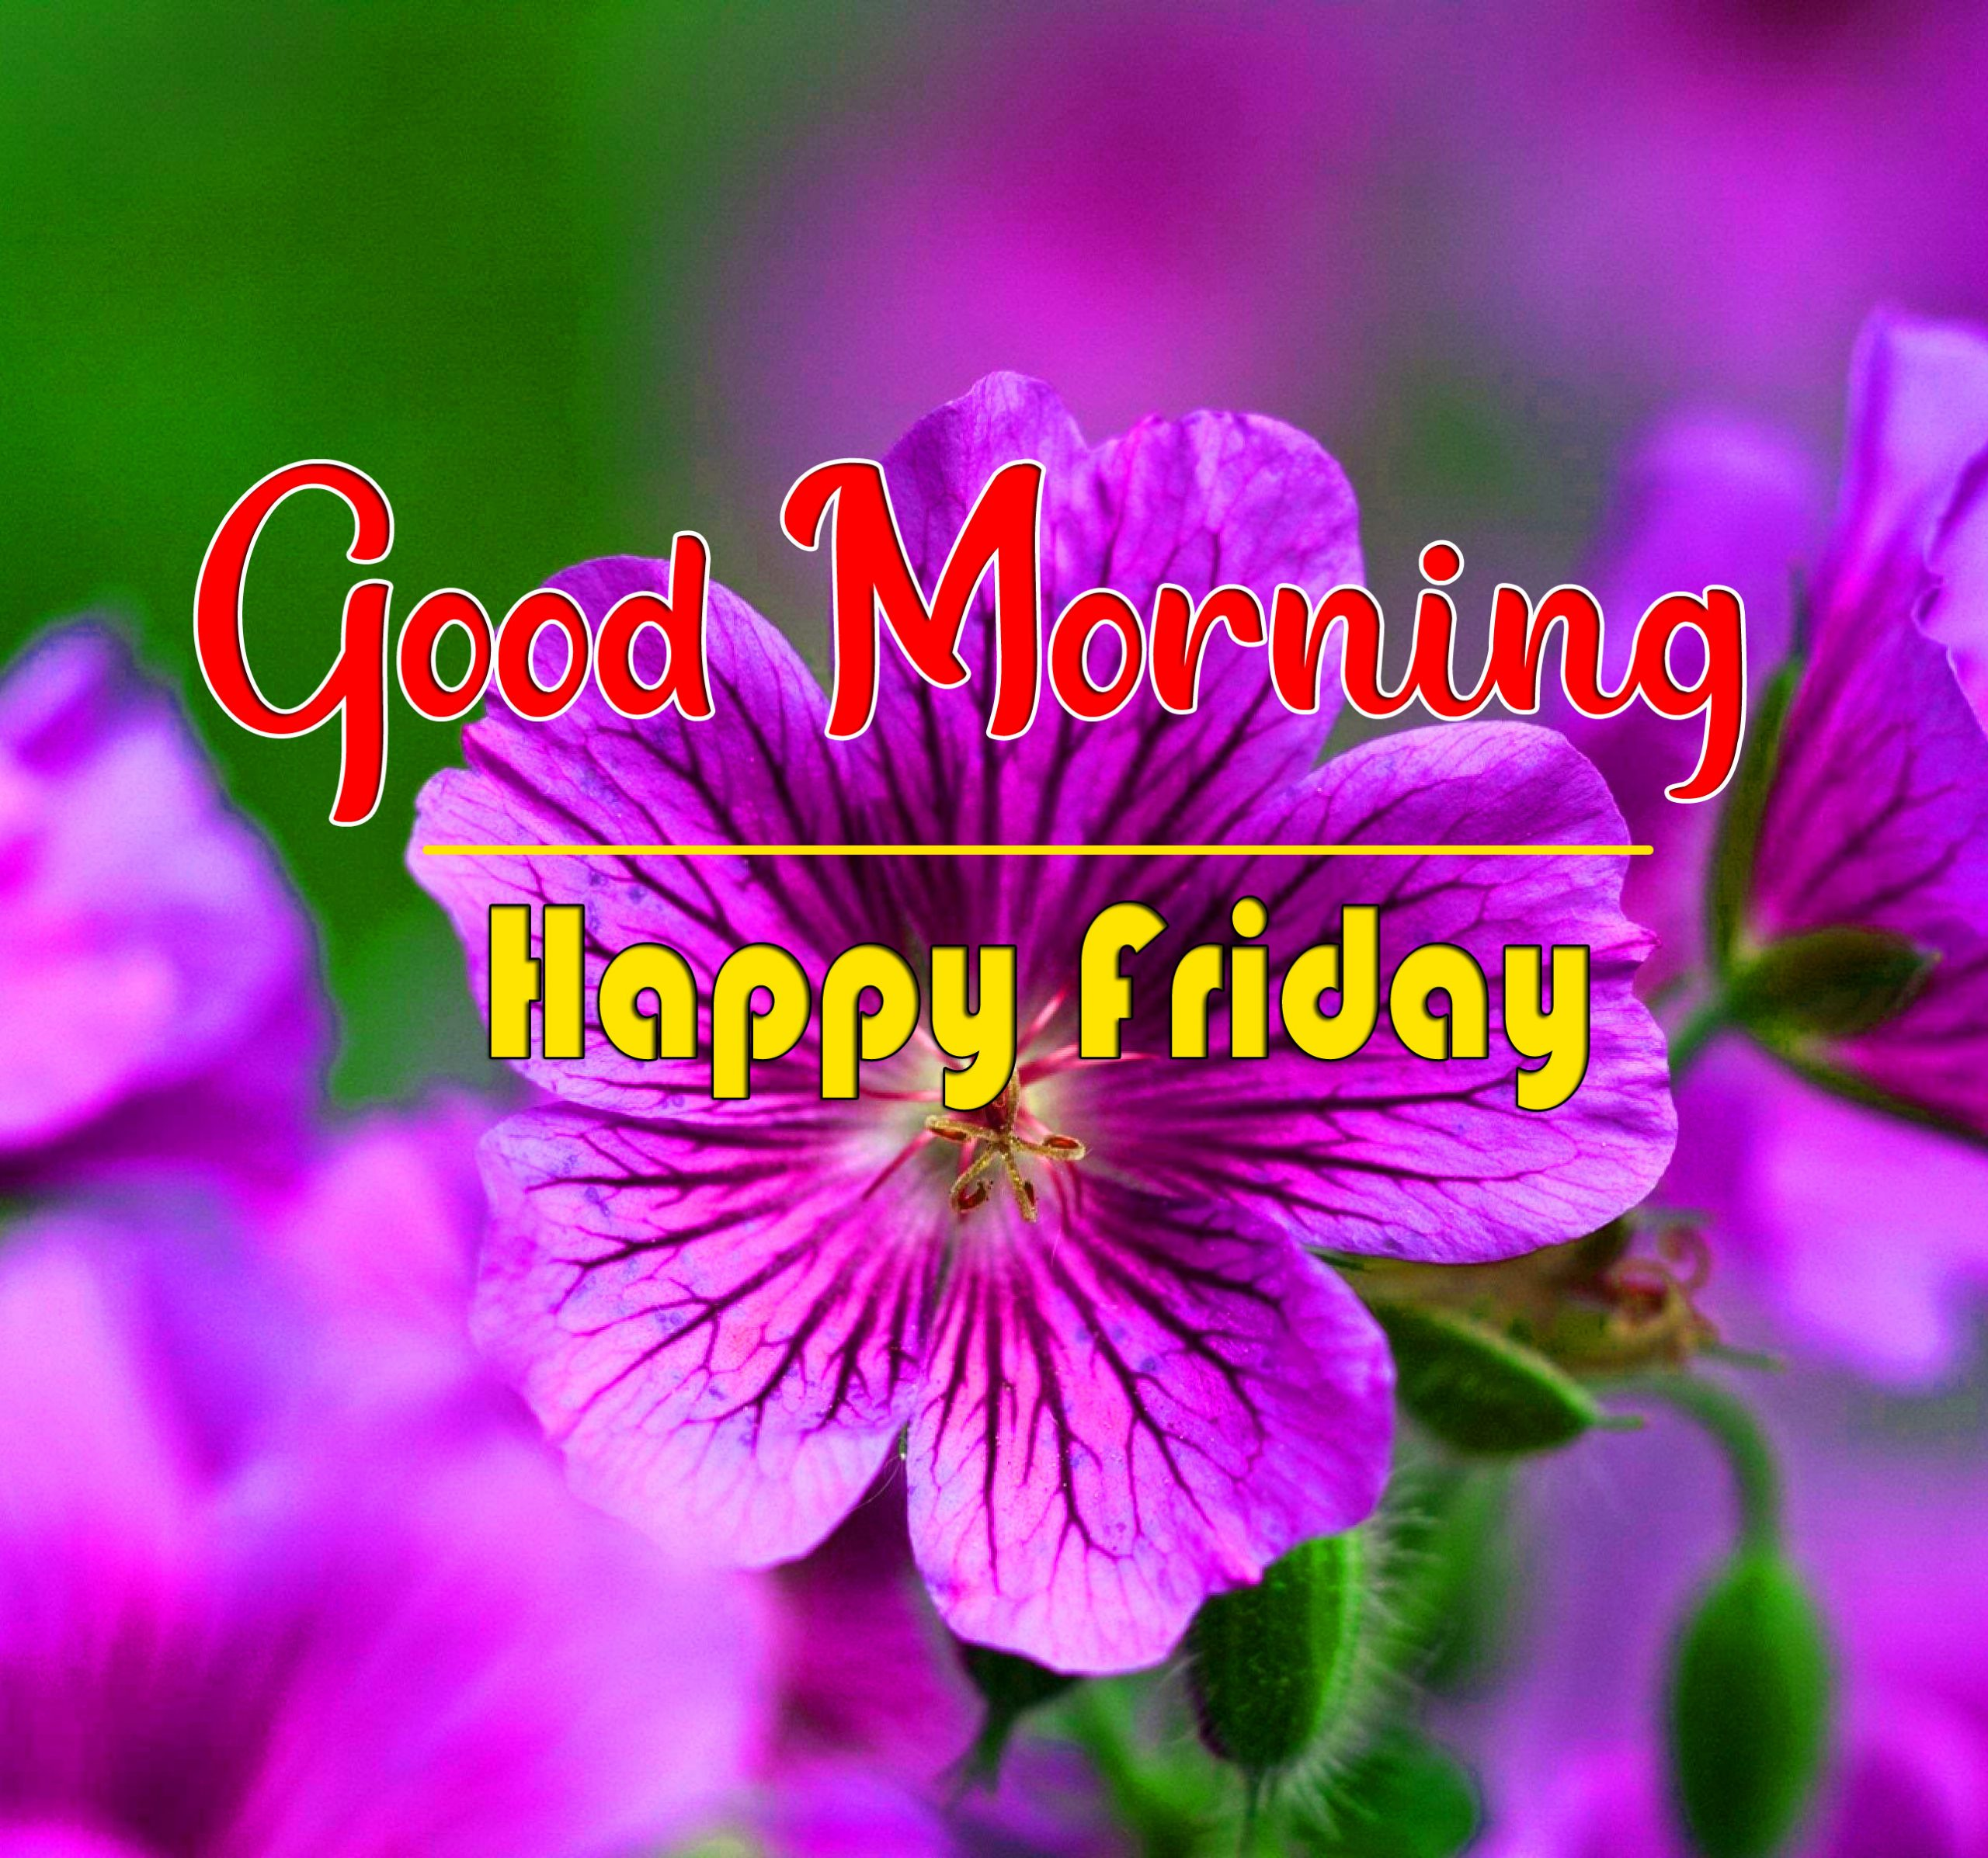 Free HD friday Good morning Wishes Wallpaper